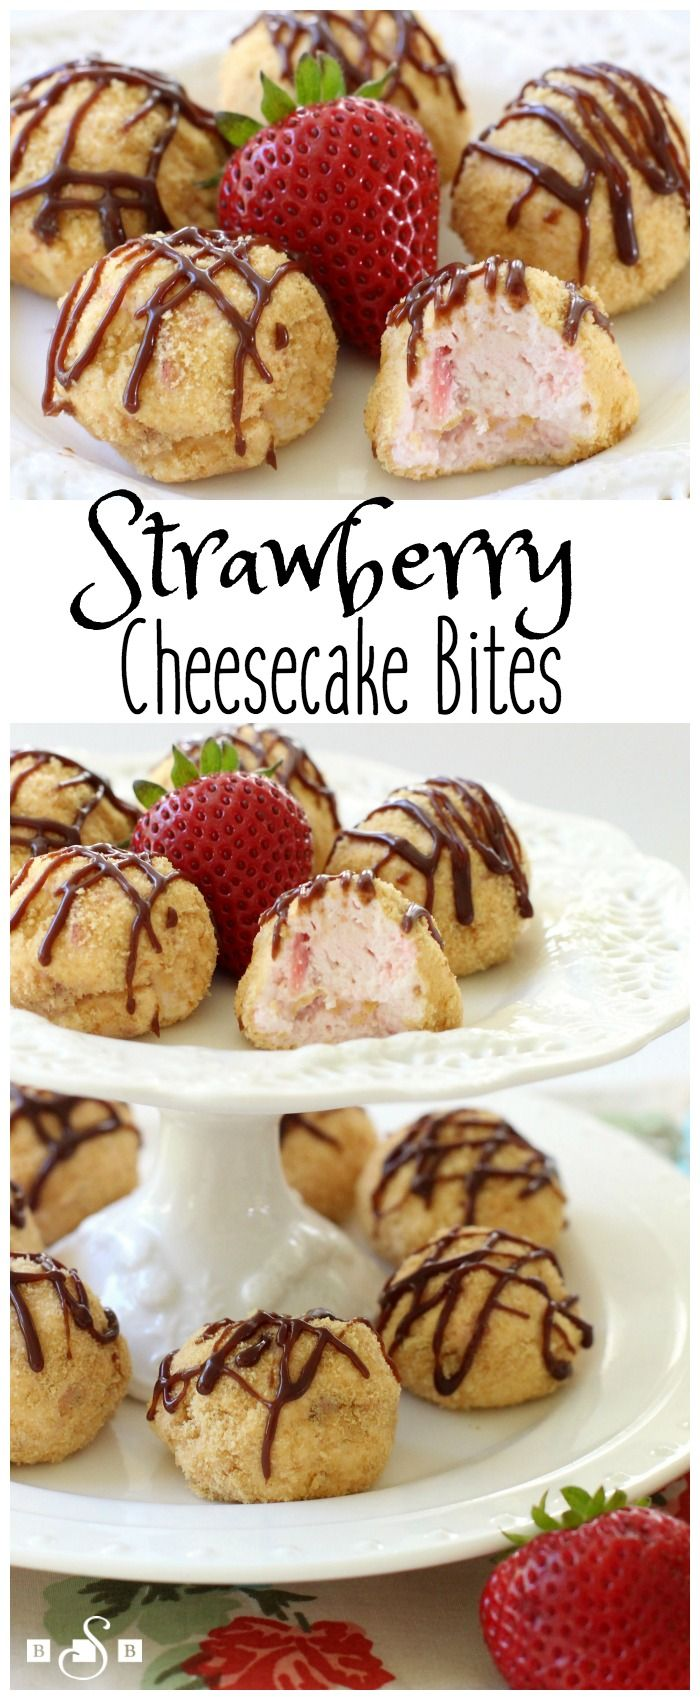 Strawberry Cheesecake Bites - tasty little bite-sized treats that satisfy your cheesecake sweet tooth! So simple to make too! Butter With A Side of Bread